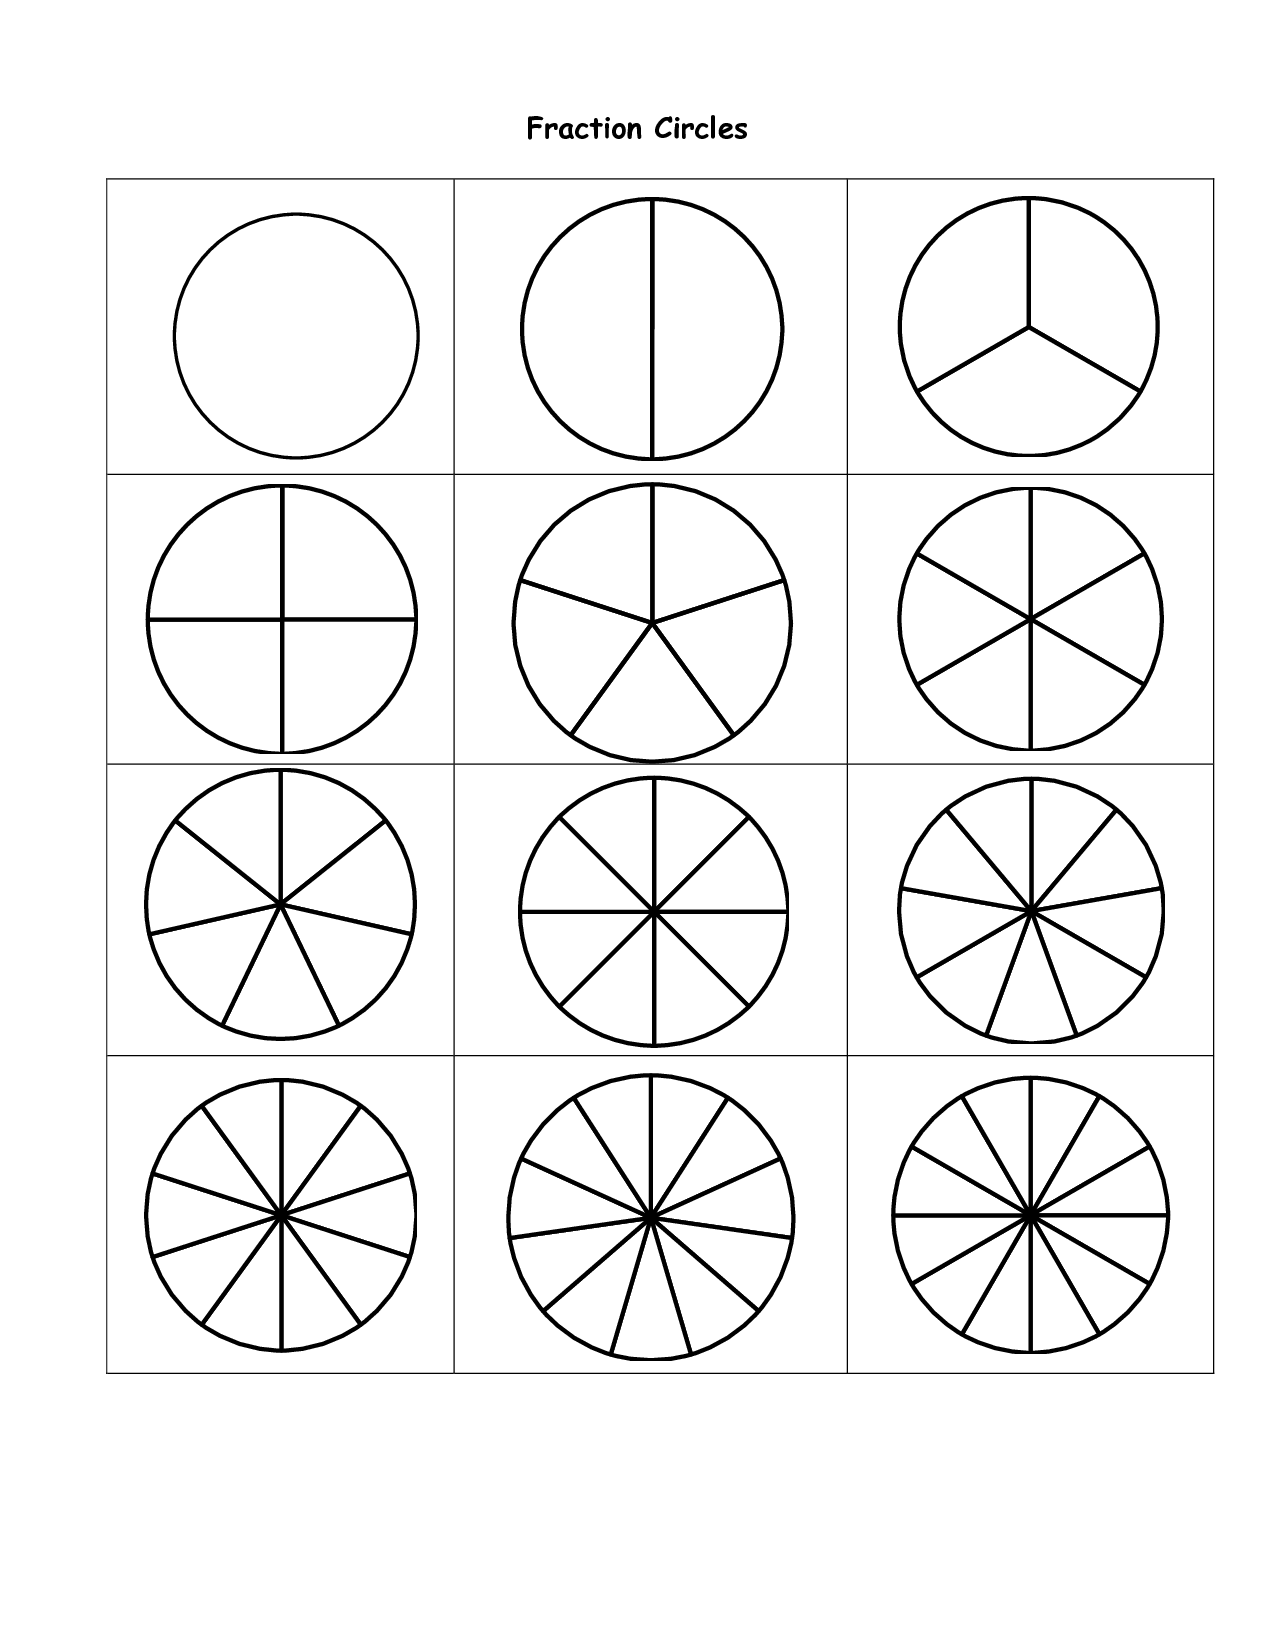 photo about Fraction Circles Printable referred to as Portion Circles Templates. 1000 illustrations or photos above grace